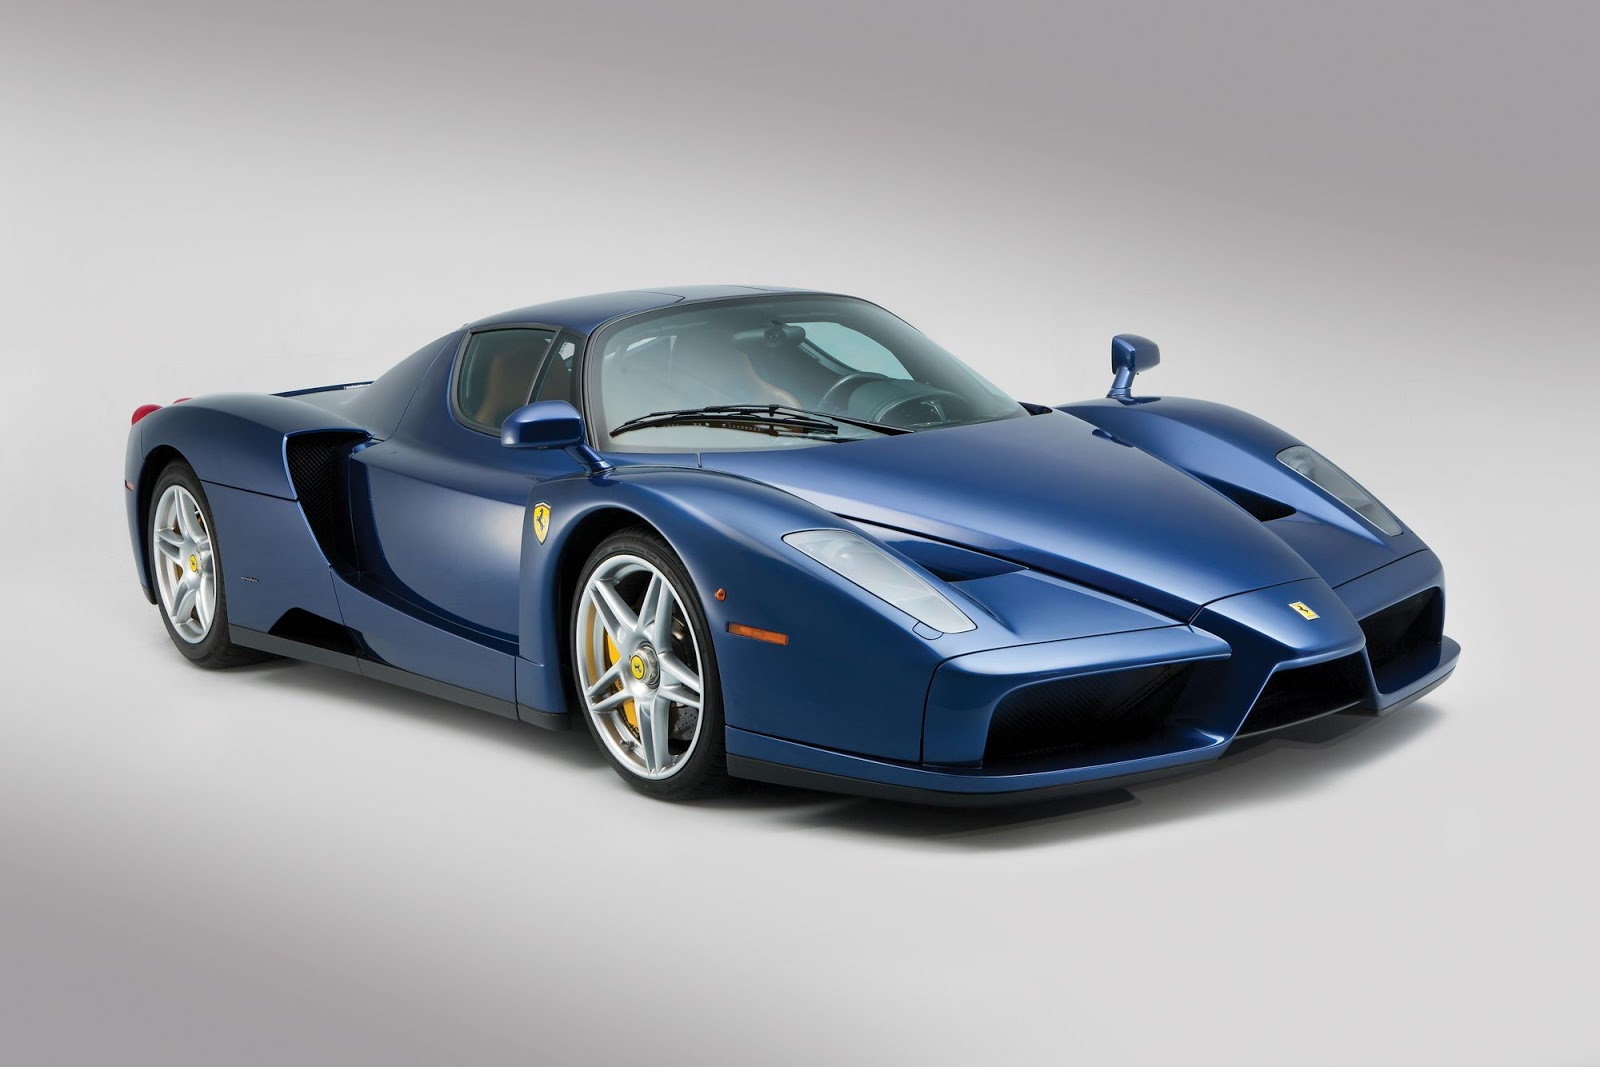 Blue Ferrari Enzo in auction (1)